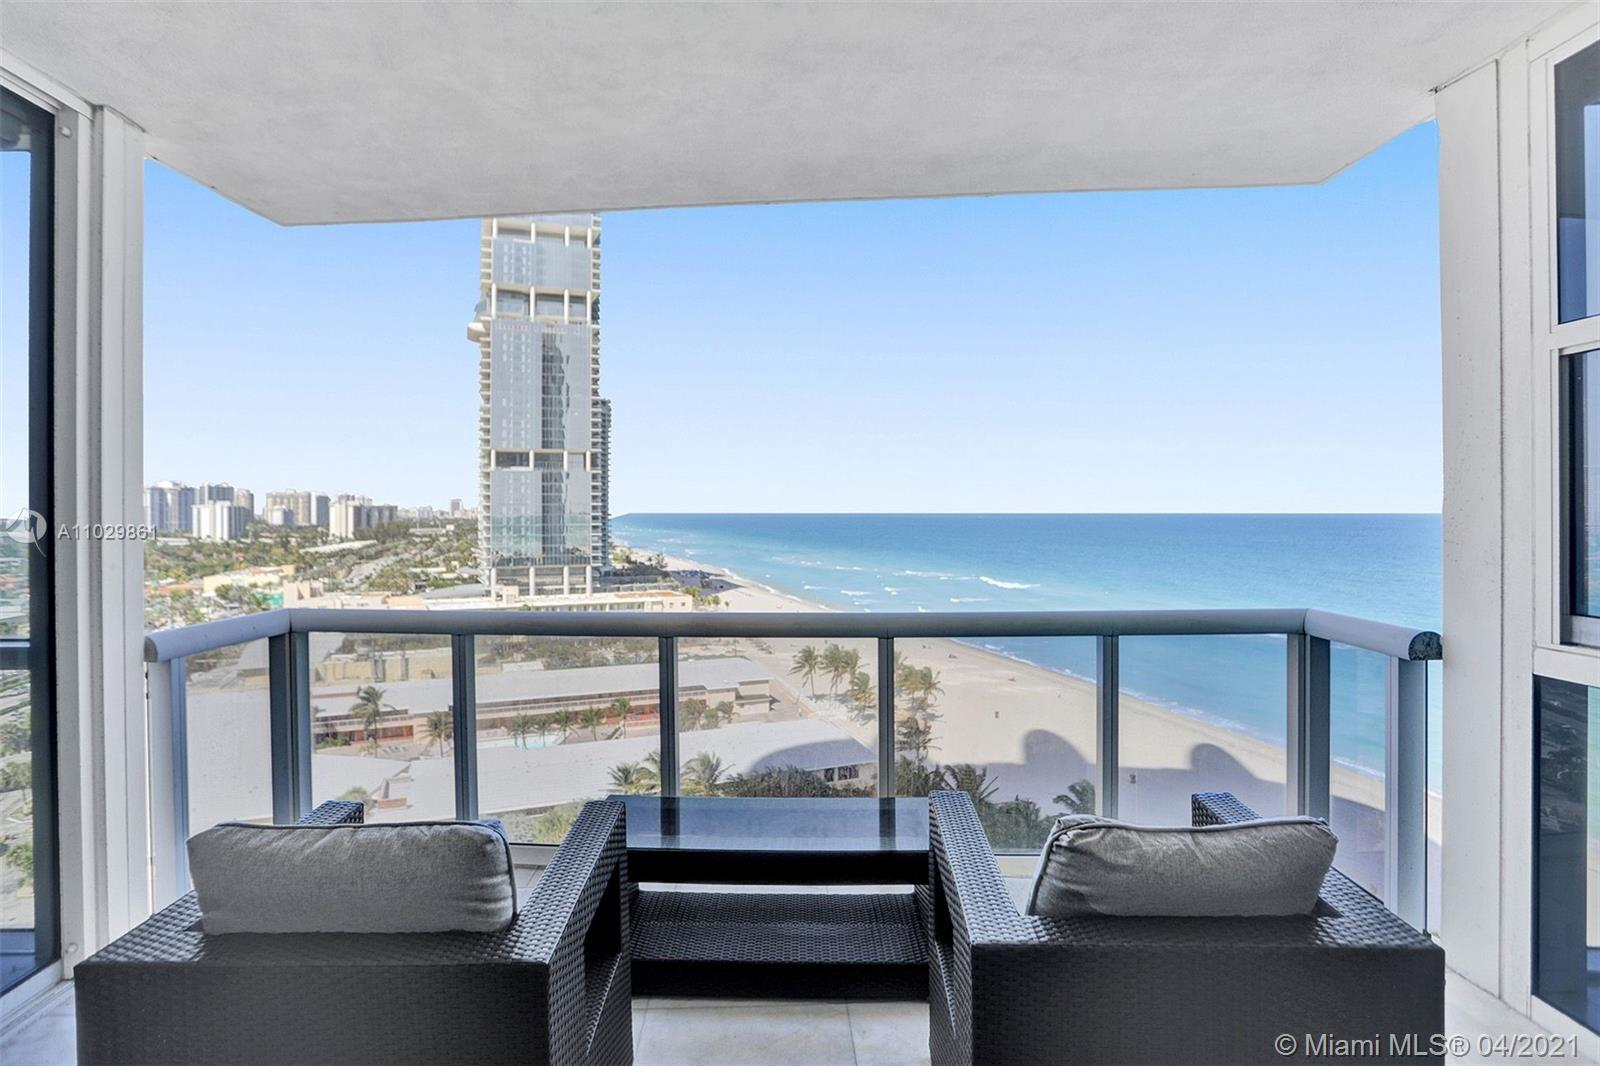 Stunning Ocean view apartment! Island Kitchen with top of the line apliances! Oversized master bedro